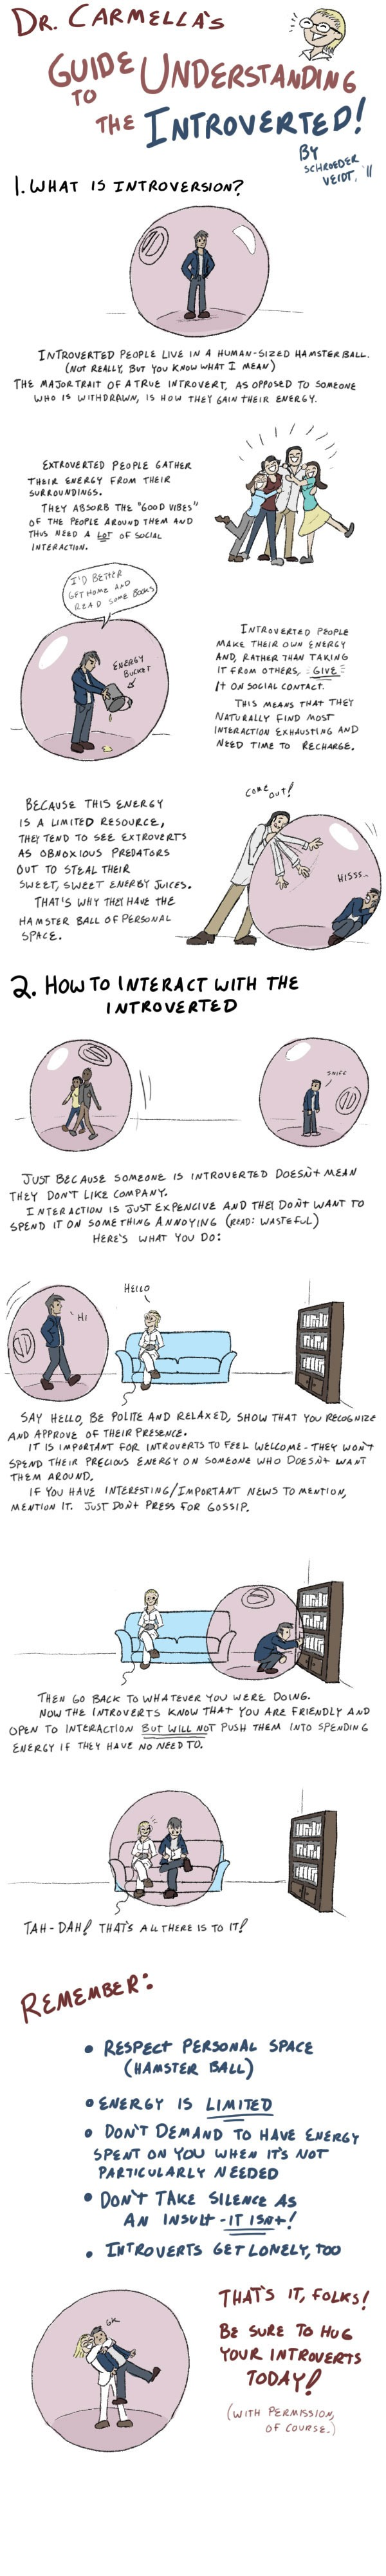 the introvert